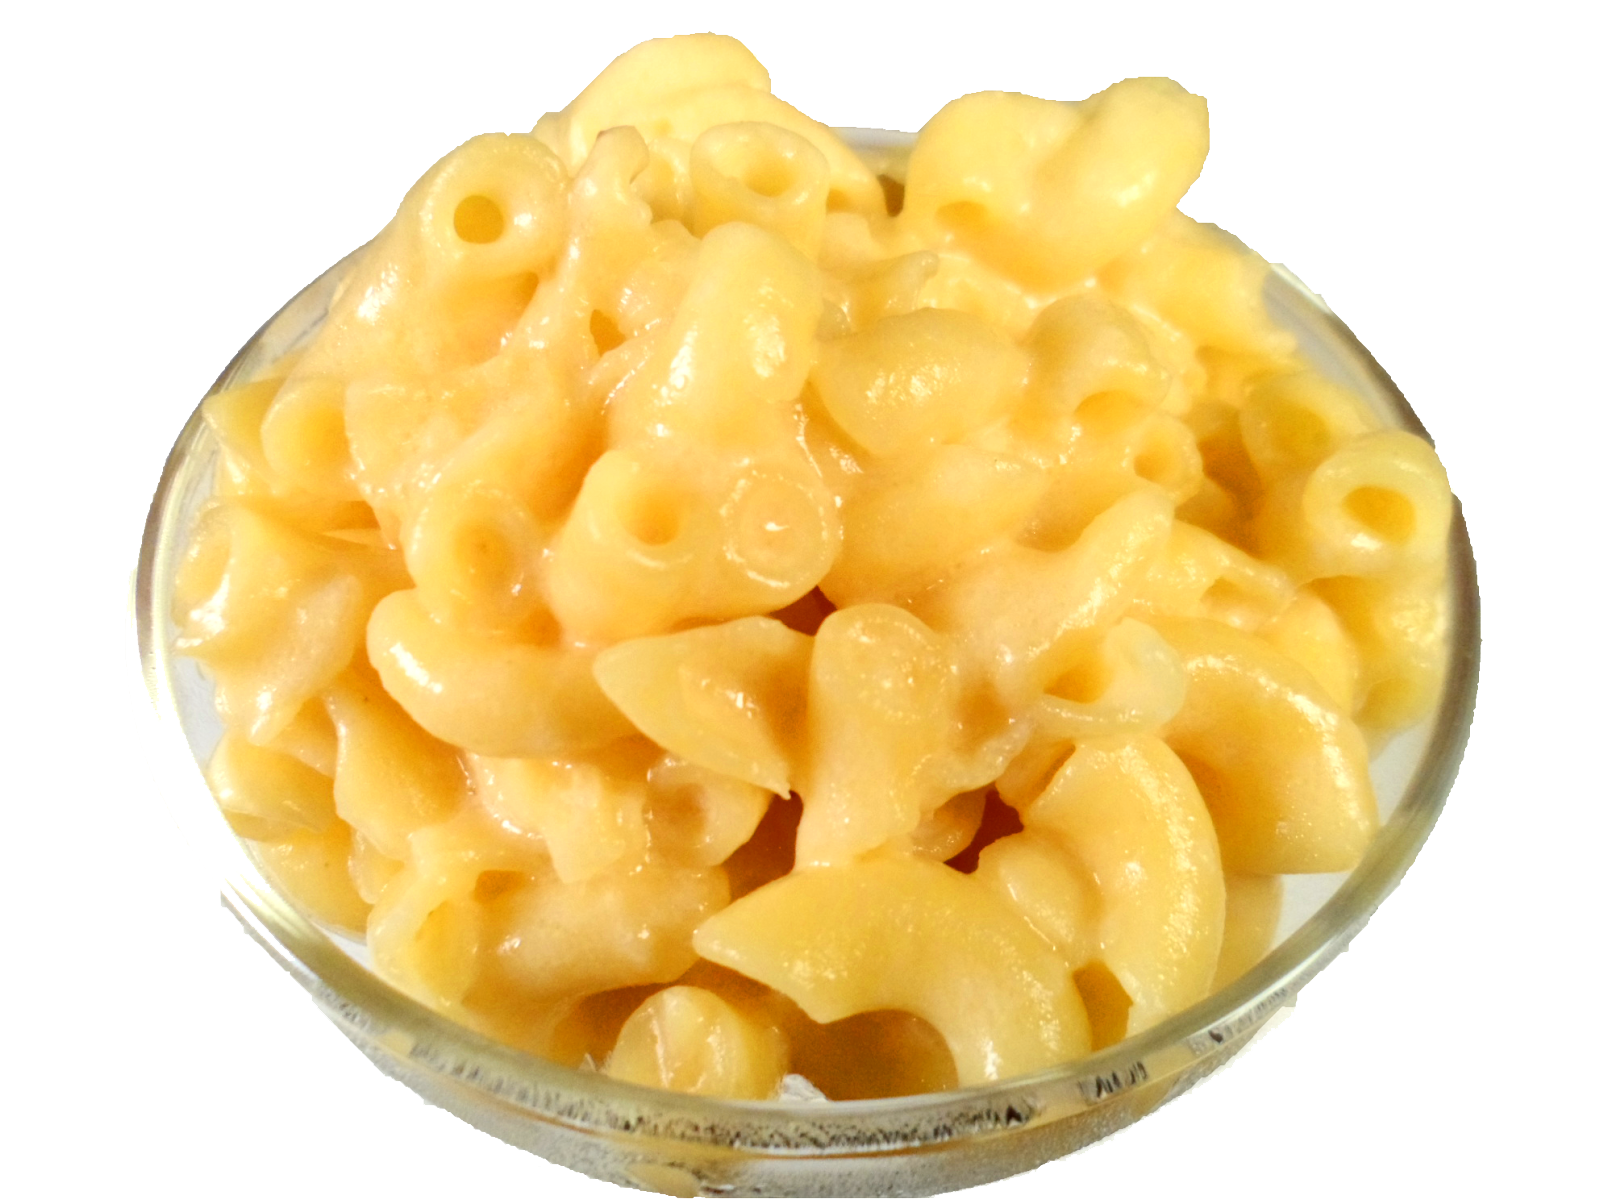 Mac and cheese png. Macaroni image with transparent